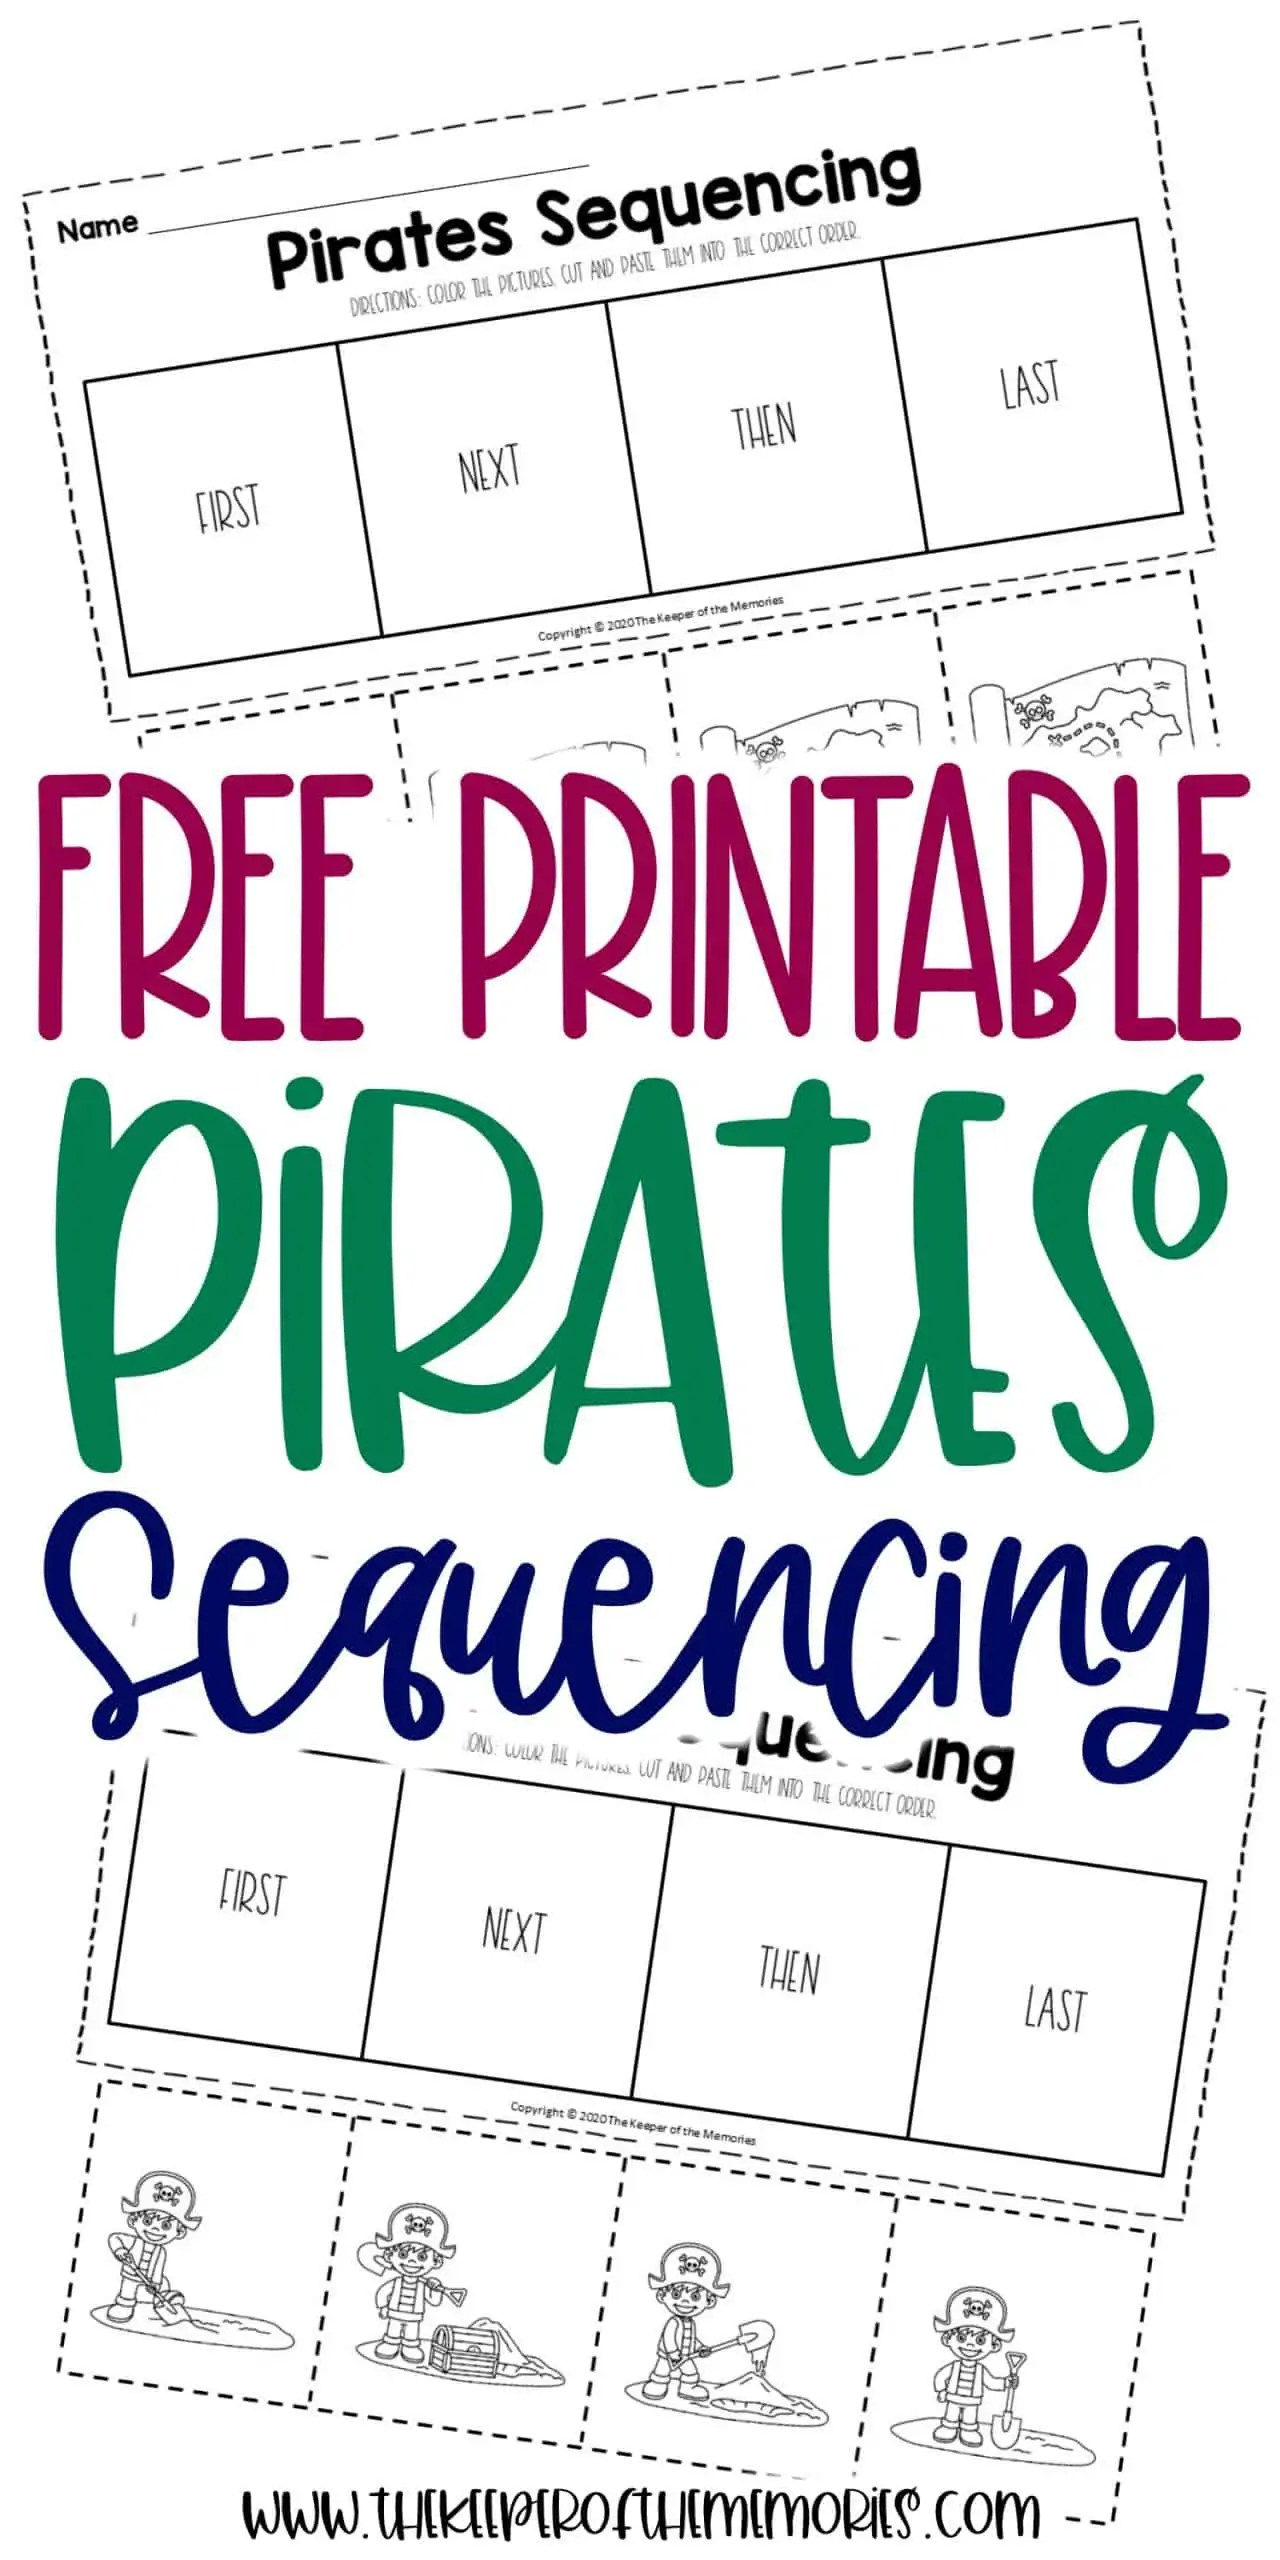 Pirates Sequencing Worksheets